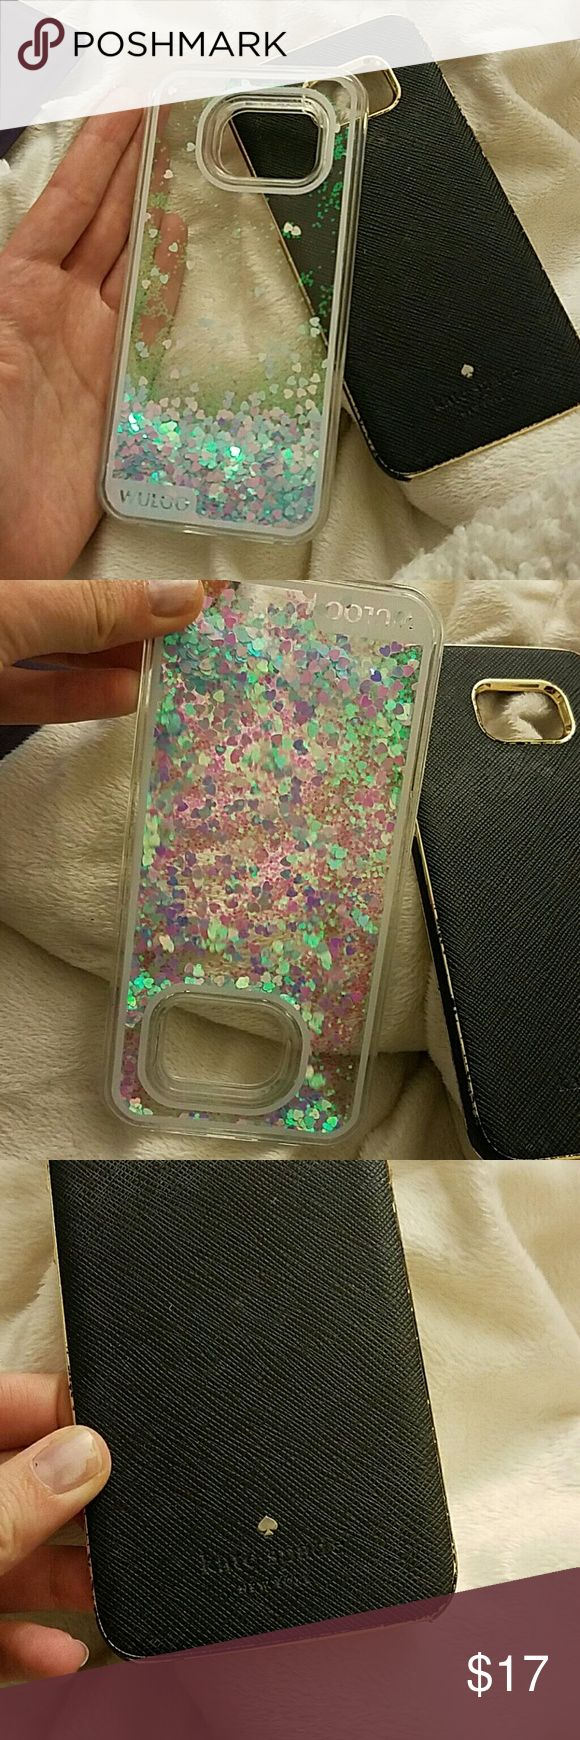 Glitter & Kate Spade samsung s7 edge cases Glitter case used for a week Kate spade case gold missing and her logo fell off. Otherwise good condition kate spade Accessories Phone Cases